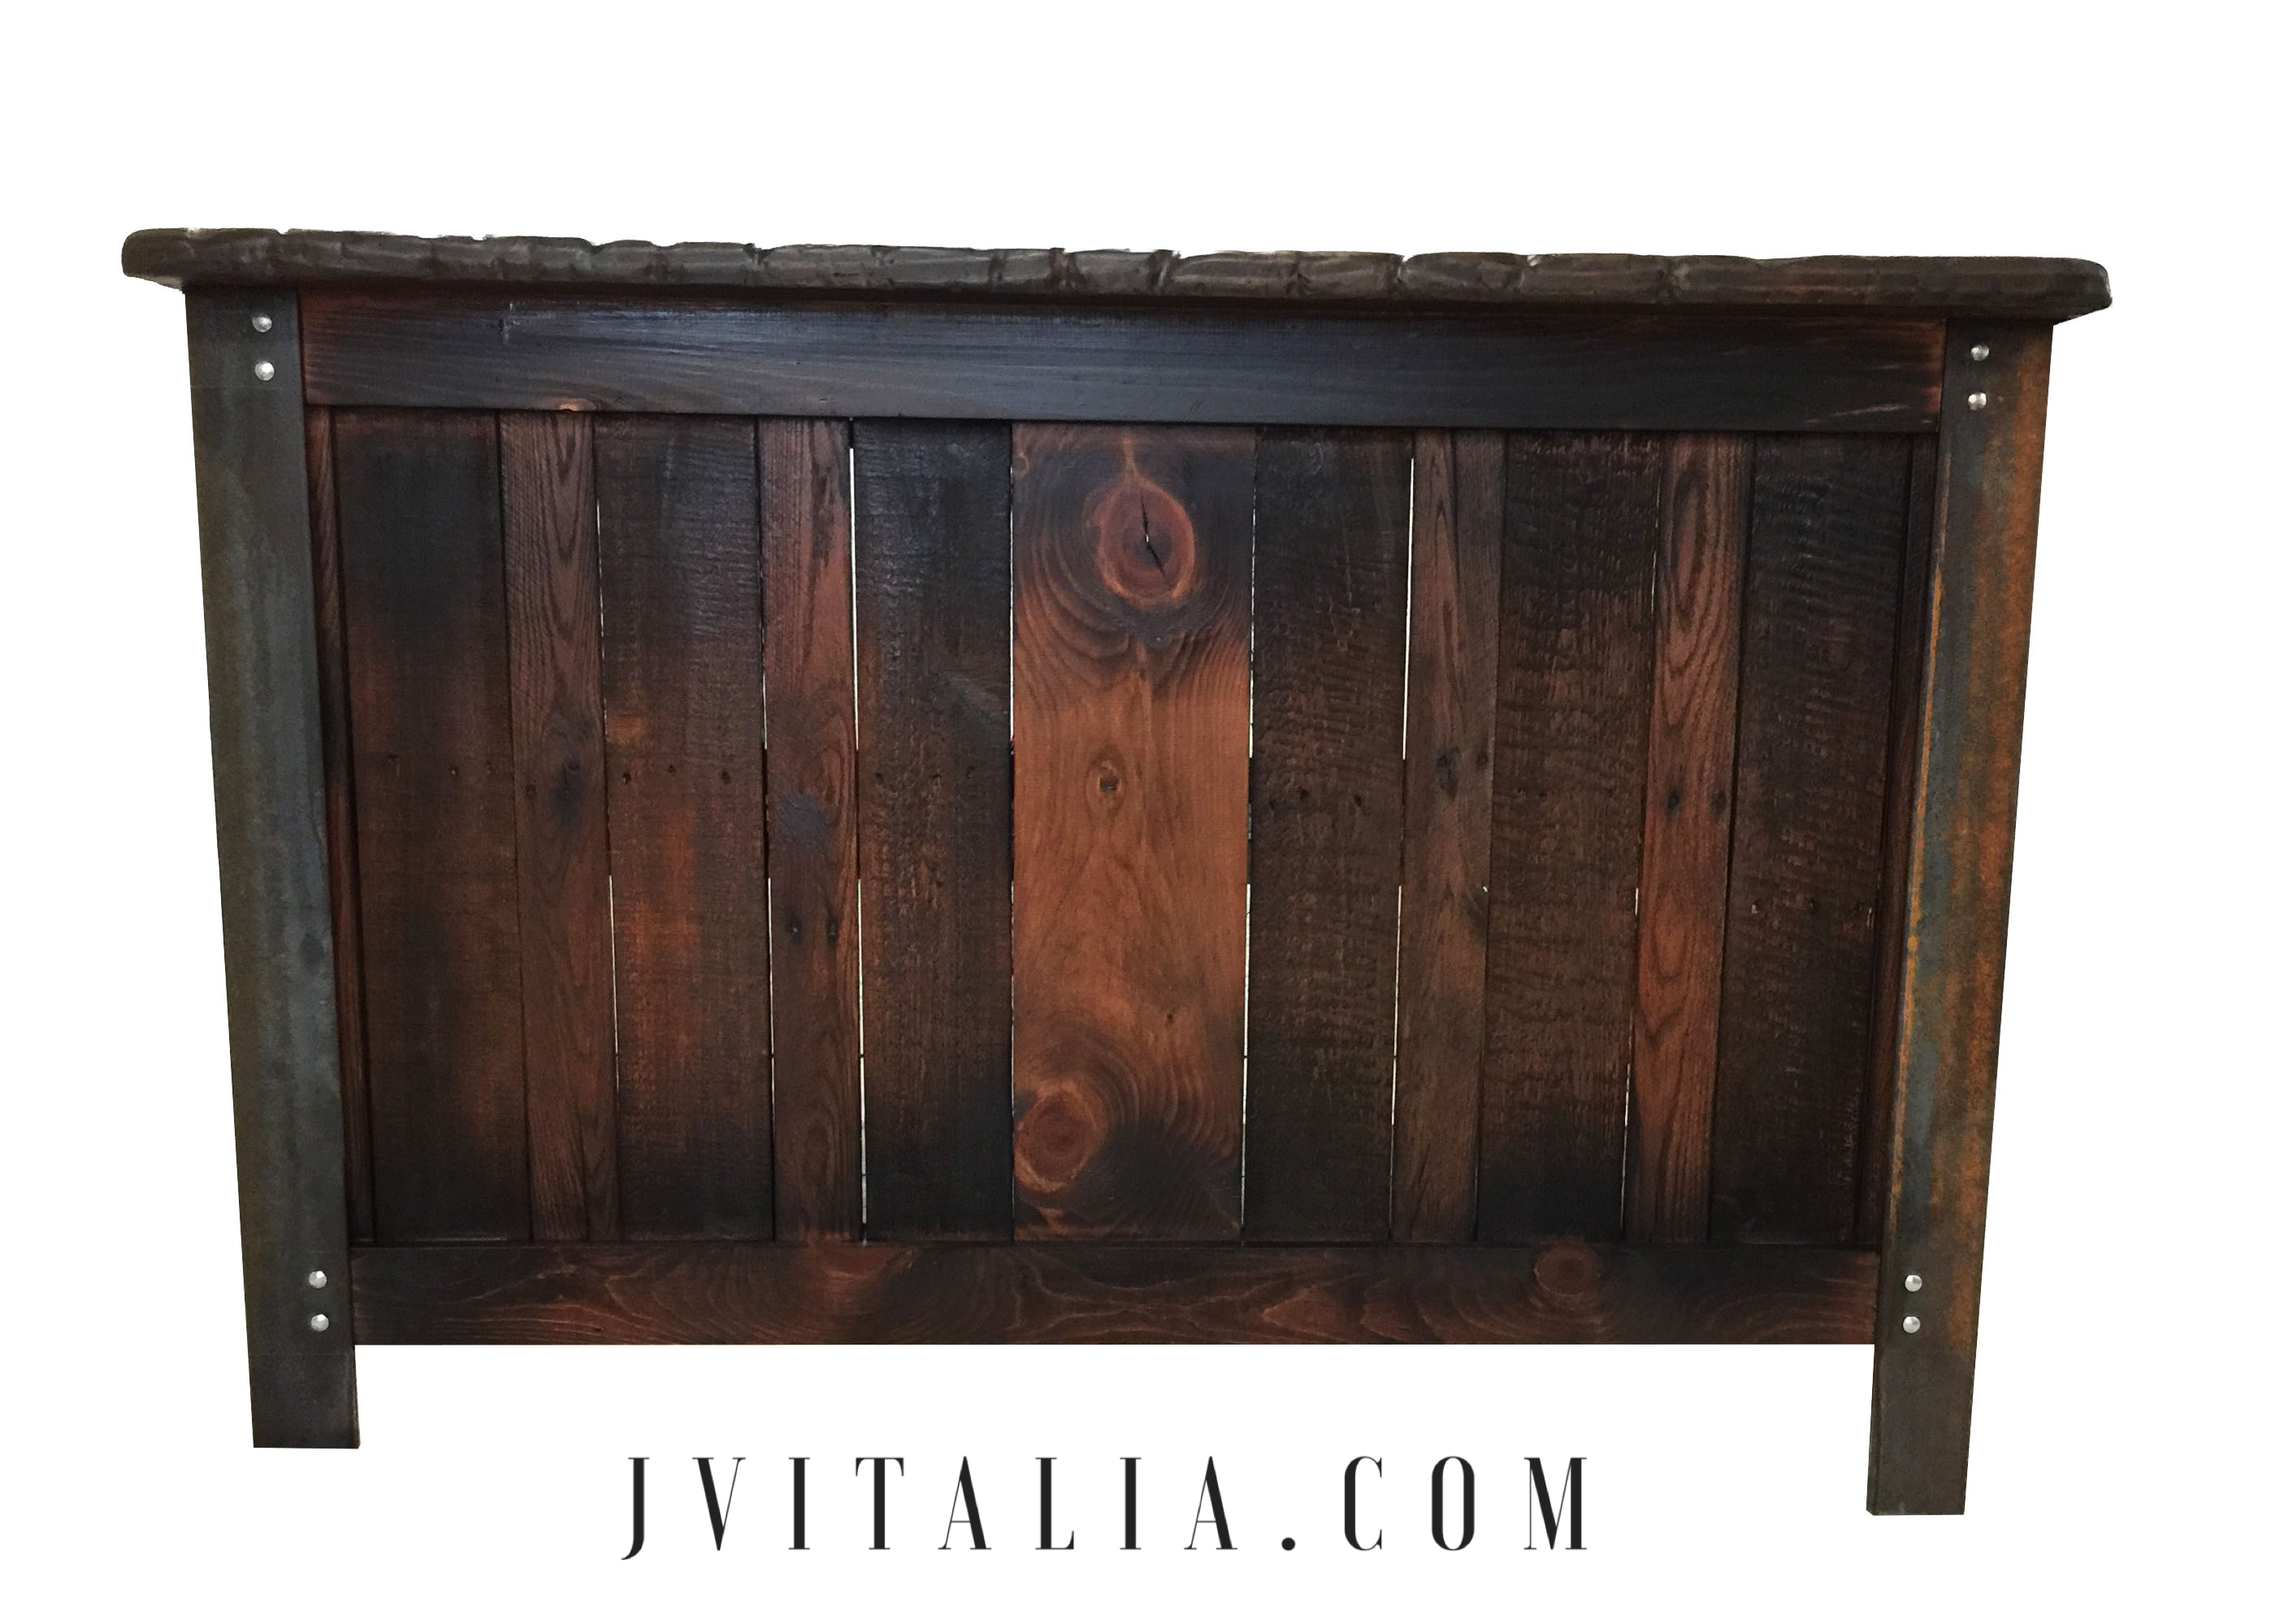 RUSTIC INDUSTRAIAL BAR - JENNIFER VITALIA